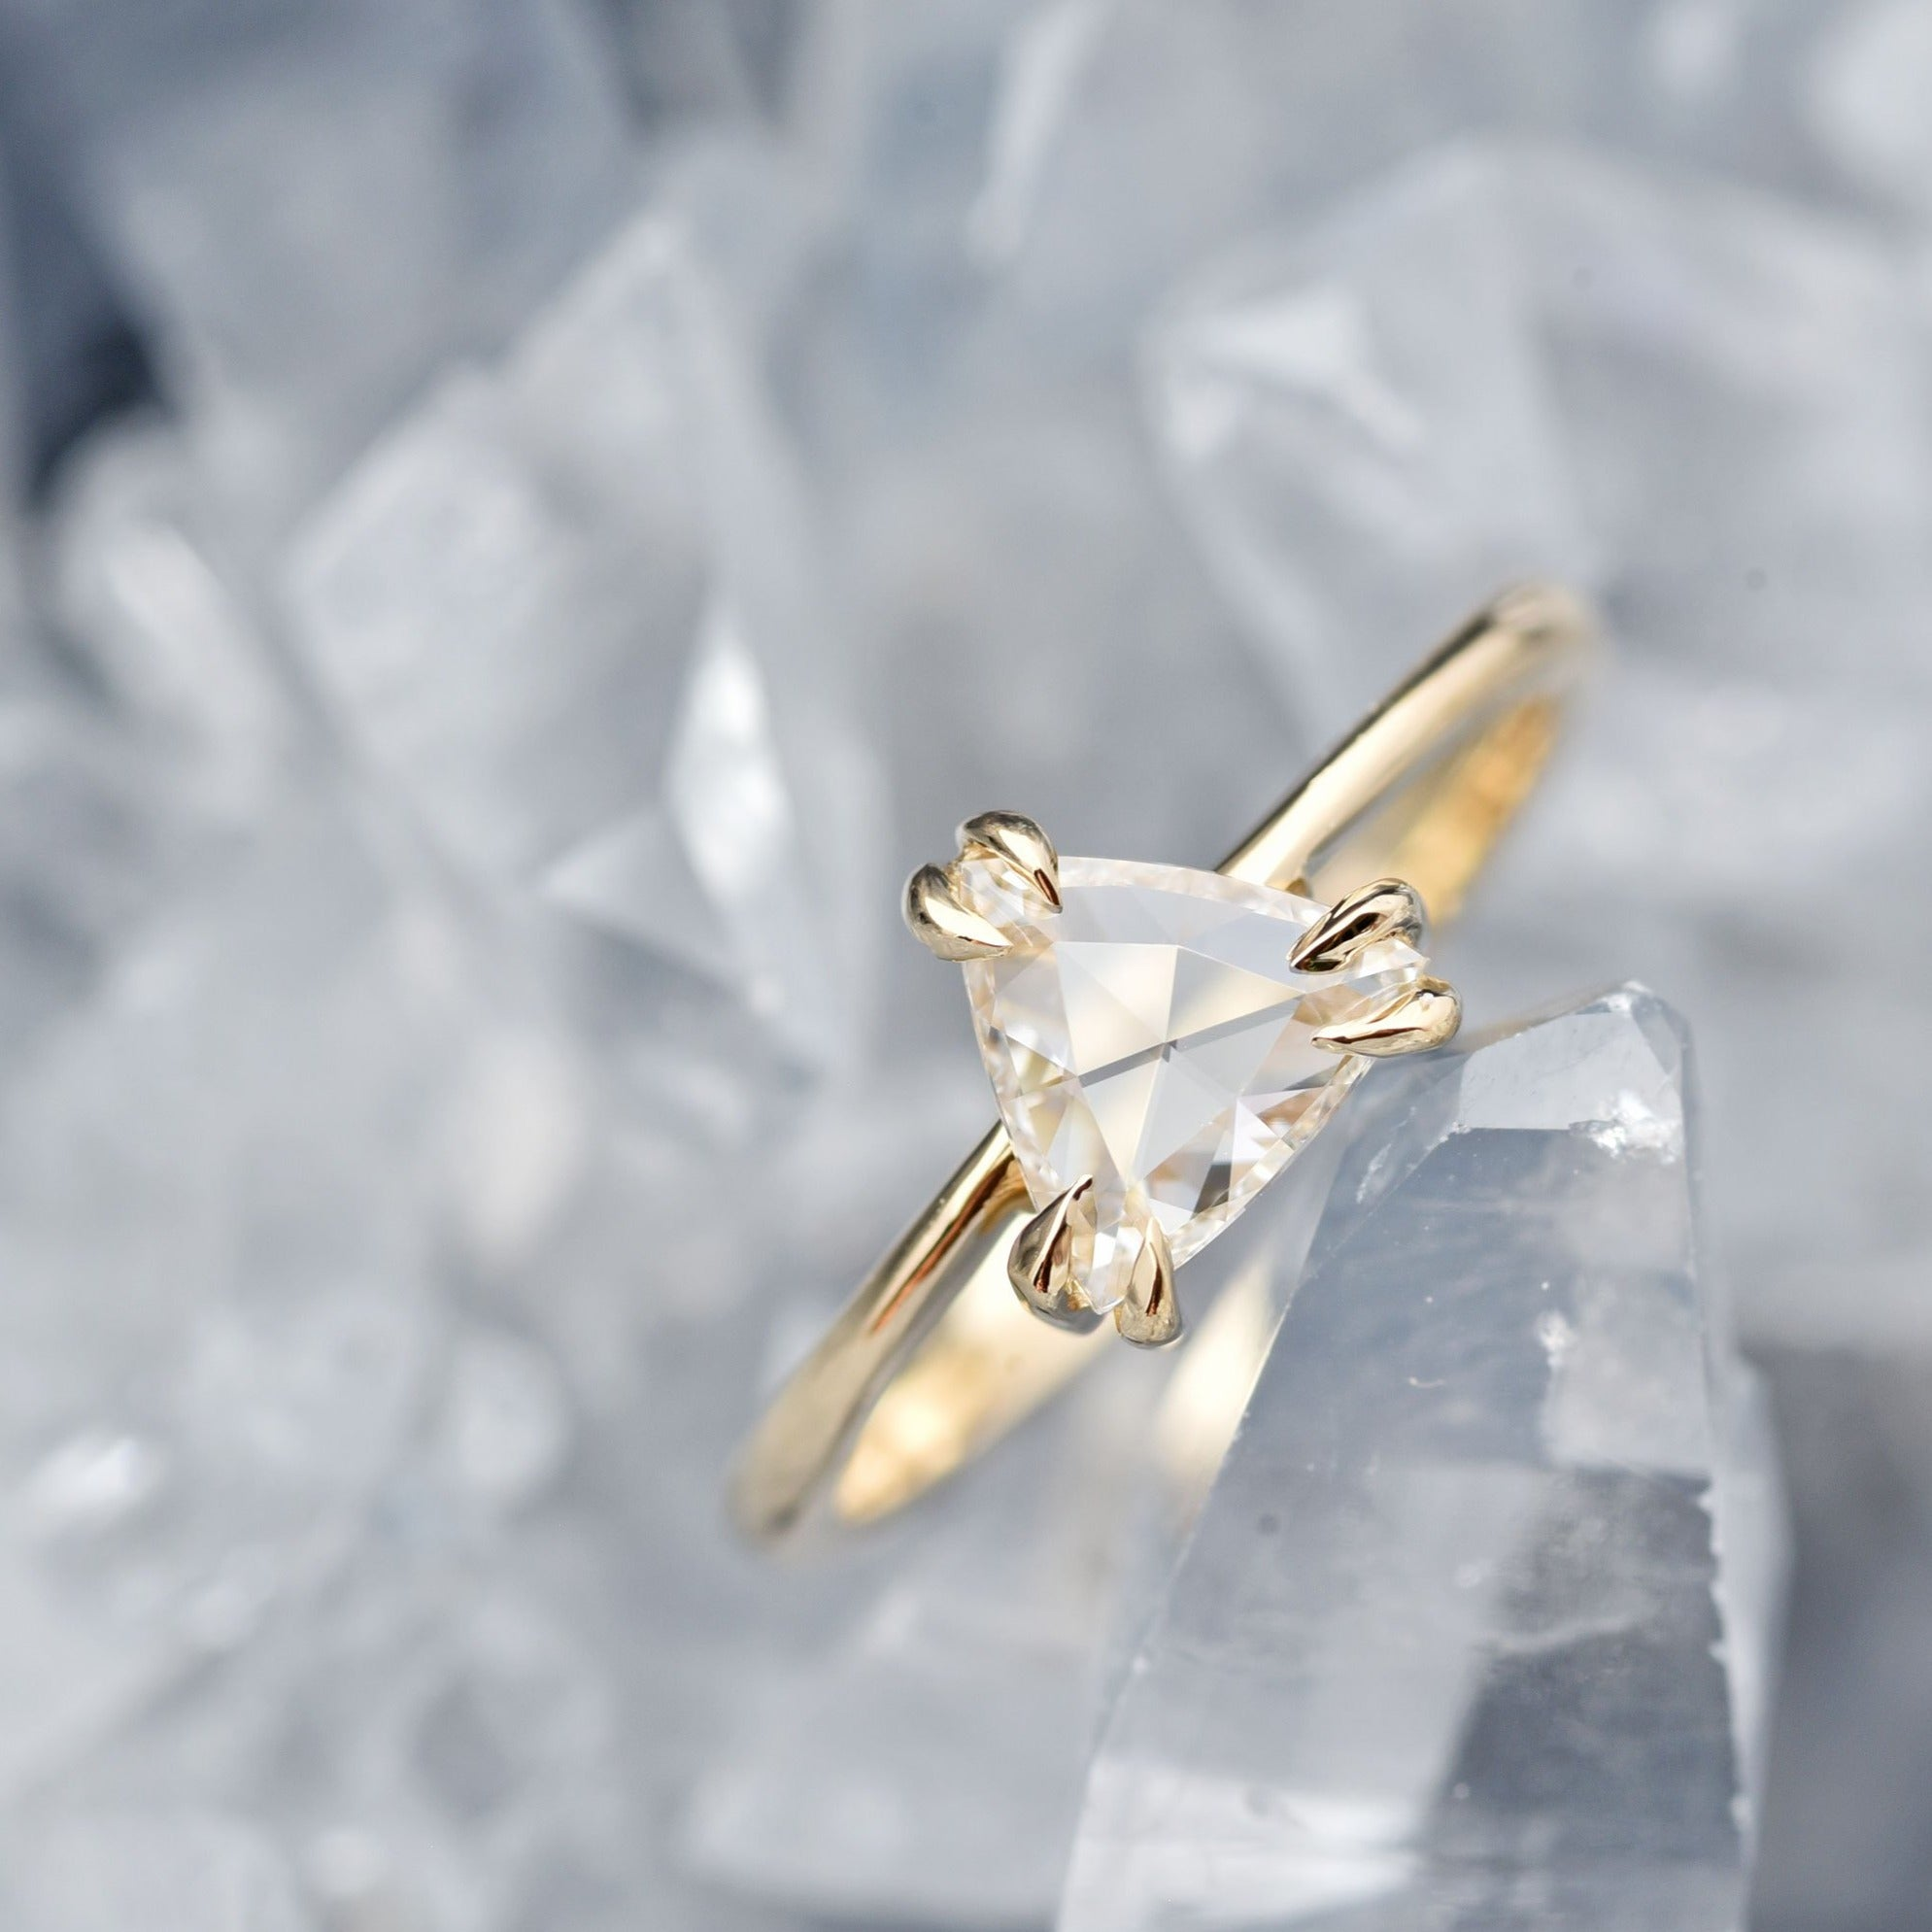 0.67ct Eva Colorless Trillion Diamond Engagement Ring in 14k Yellow Gold shown from the front